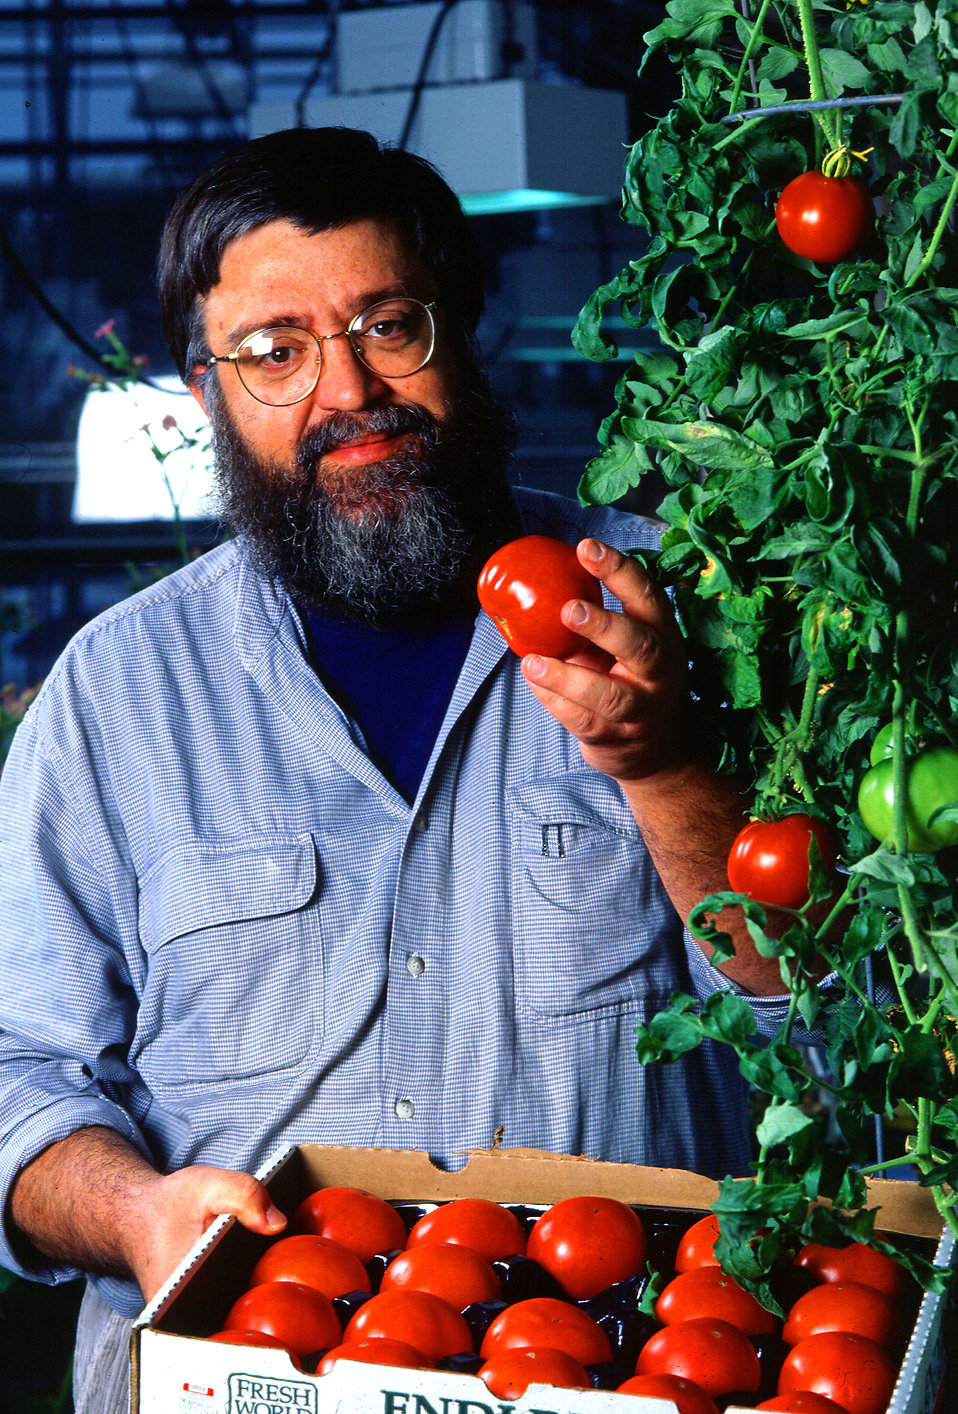 A researcher examining tomatoes : Free Stock Photo